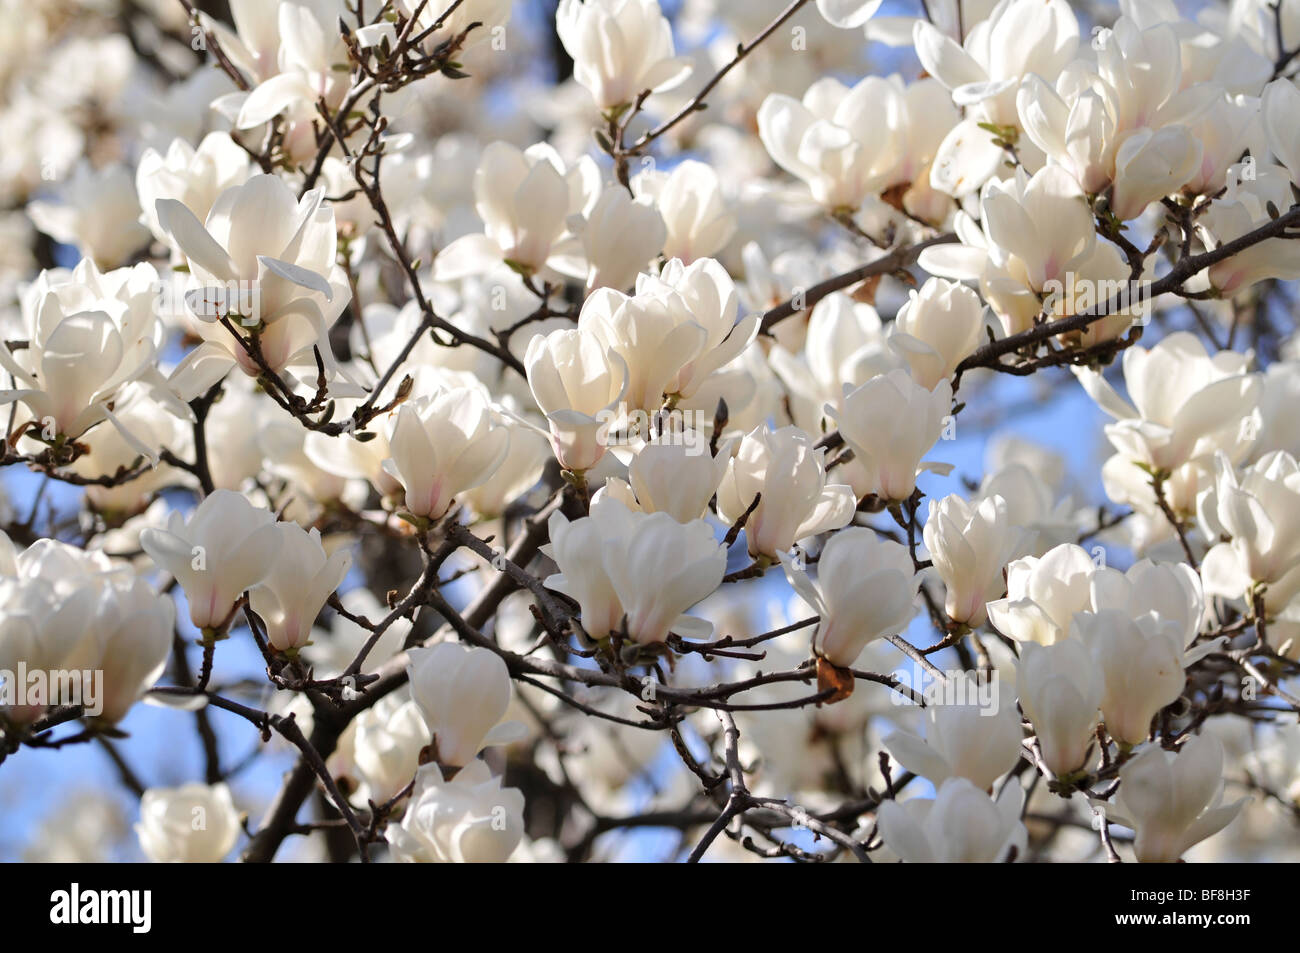 White Magnolia Flowers In Full Bloom Stock Photo 26619251 Alamy